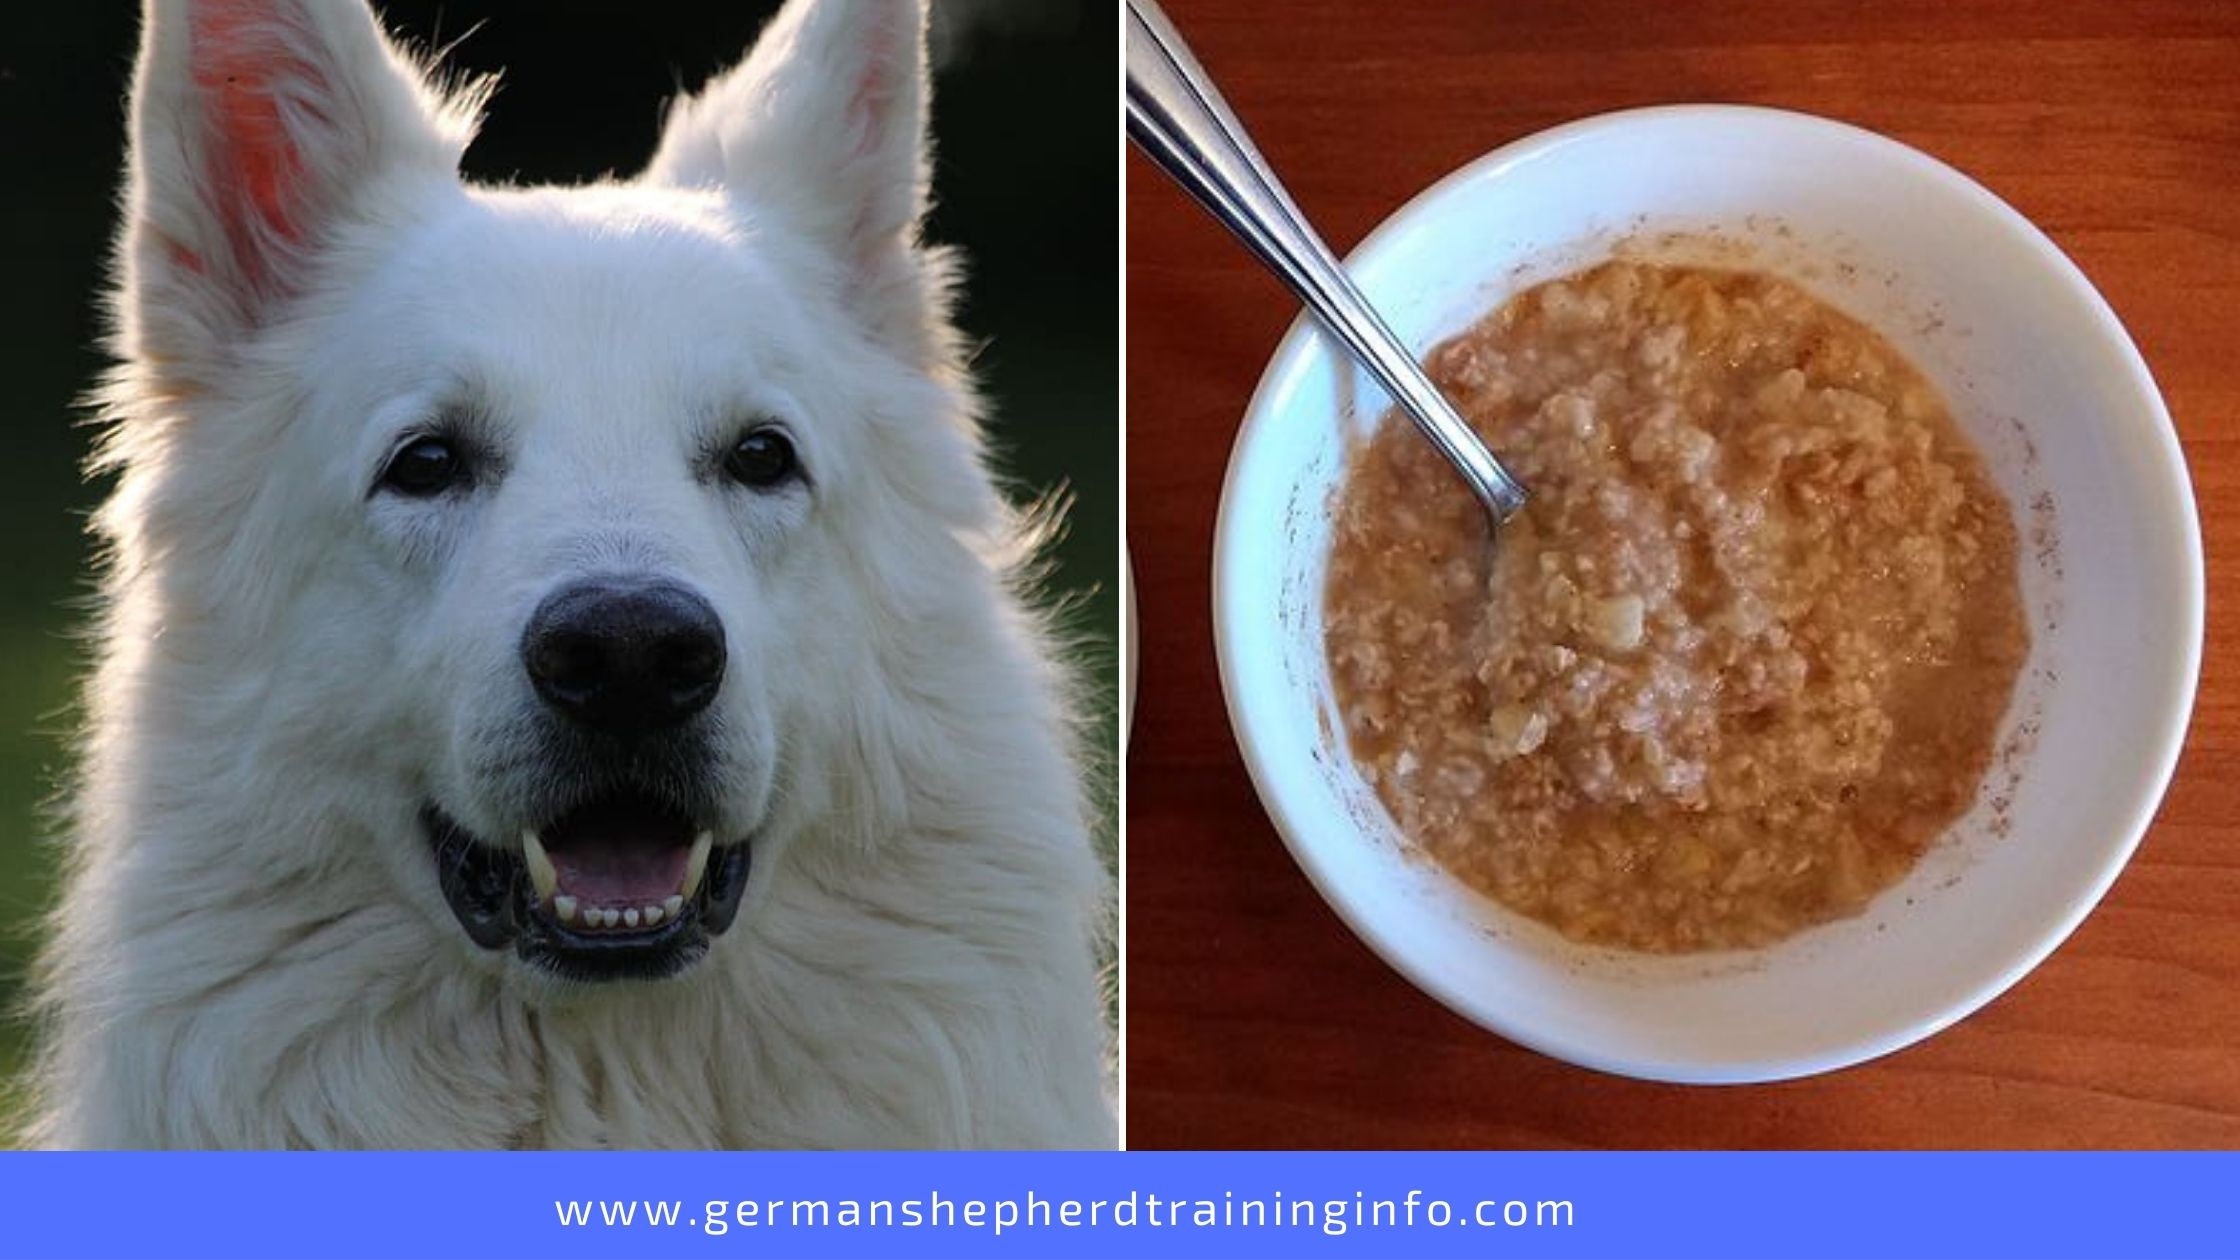 Can Dogs Eat Oatmeal With Brown Sugar And Cinnamon?